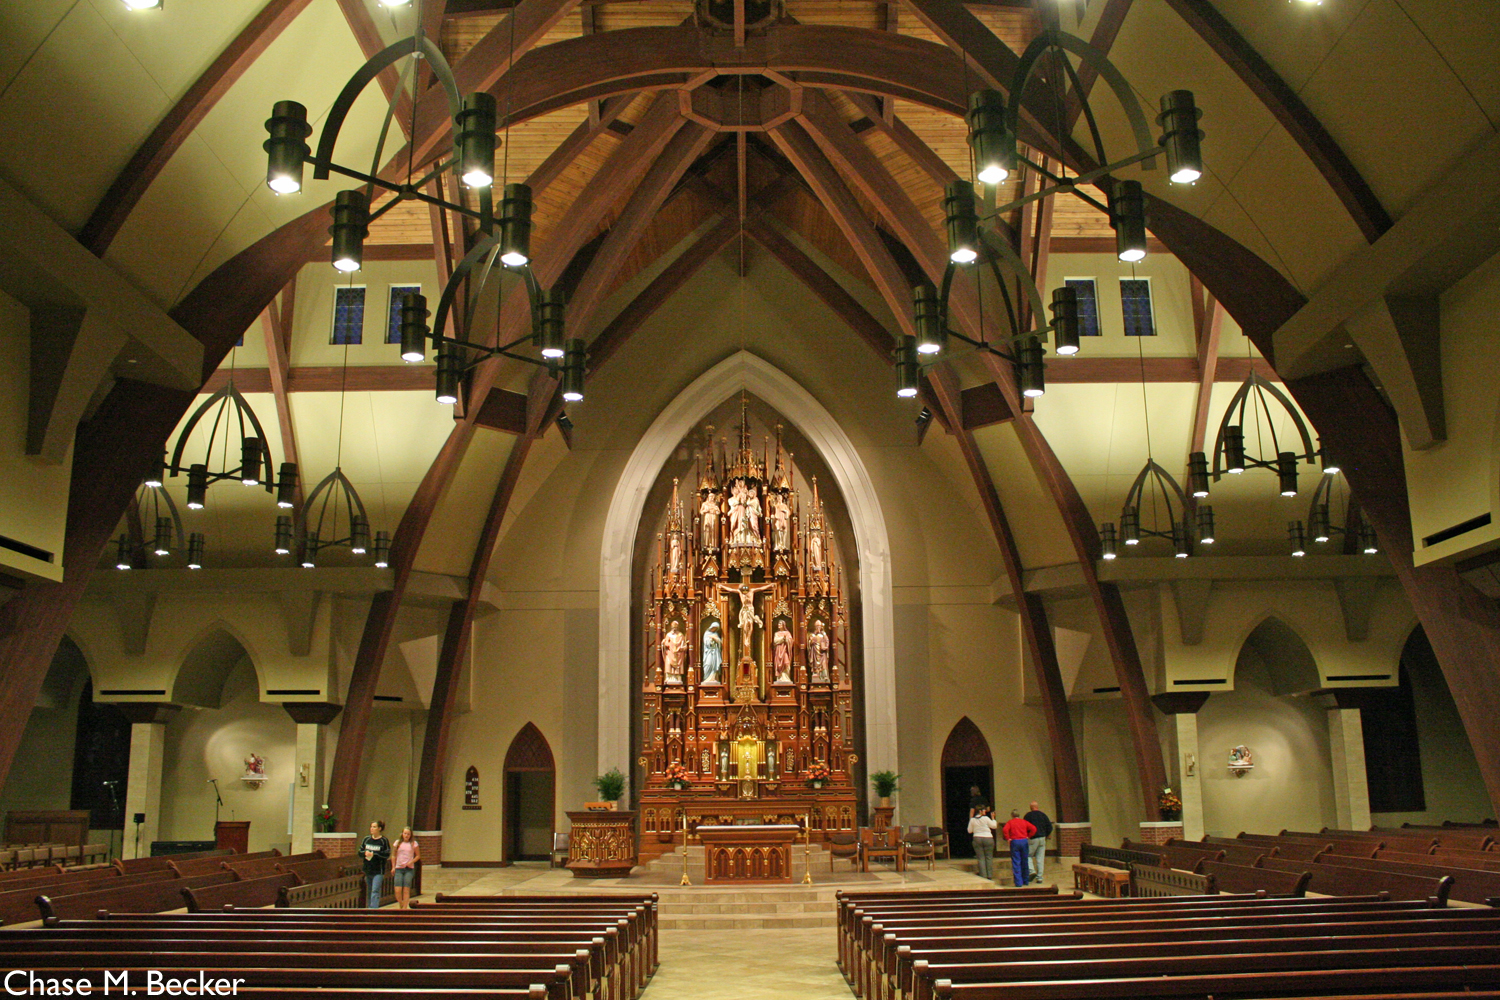 New Old In Church Architecture A Case Study Praytellblog